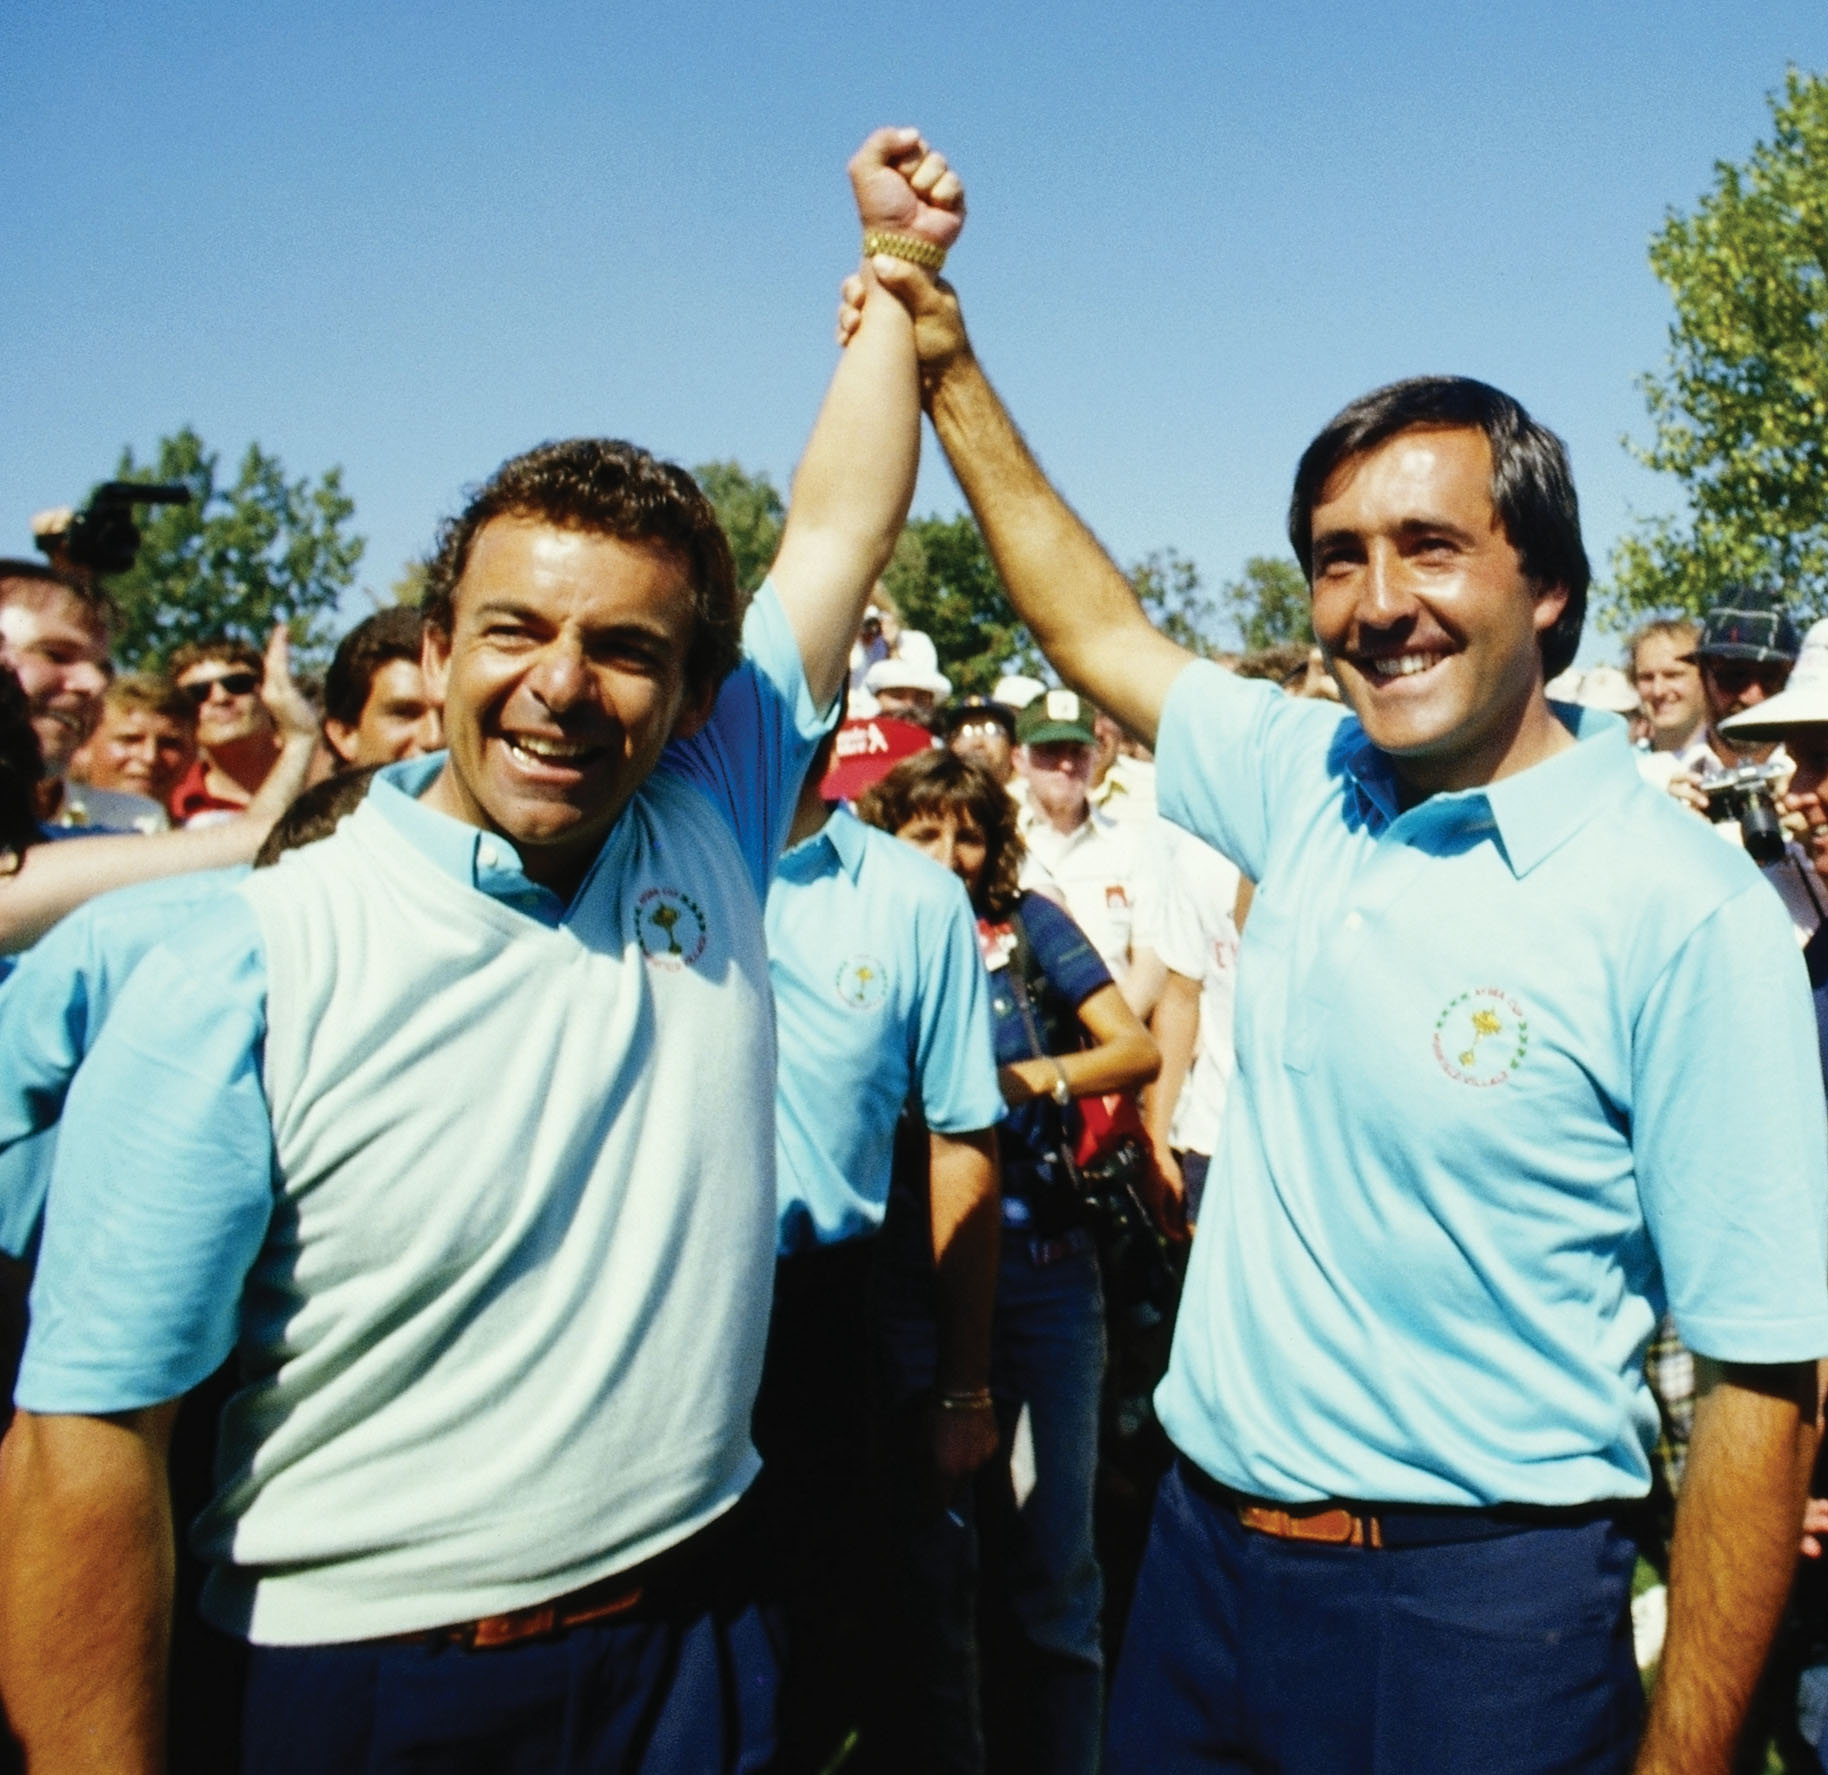 Tony Jacklin and Seve Ballesteros were two of the forces that helped turn the tide for Team Europe.